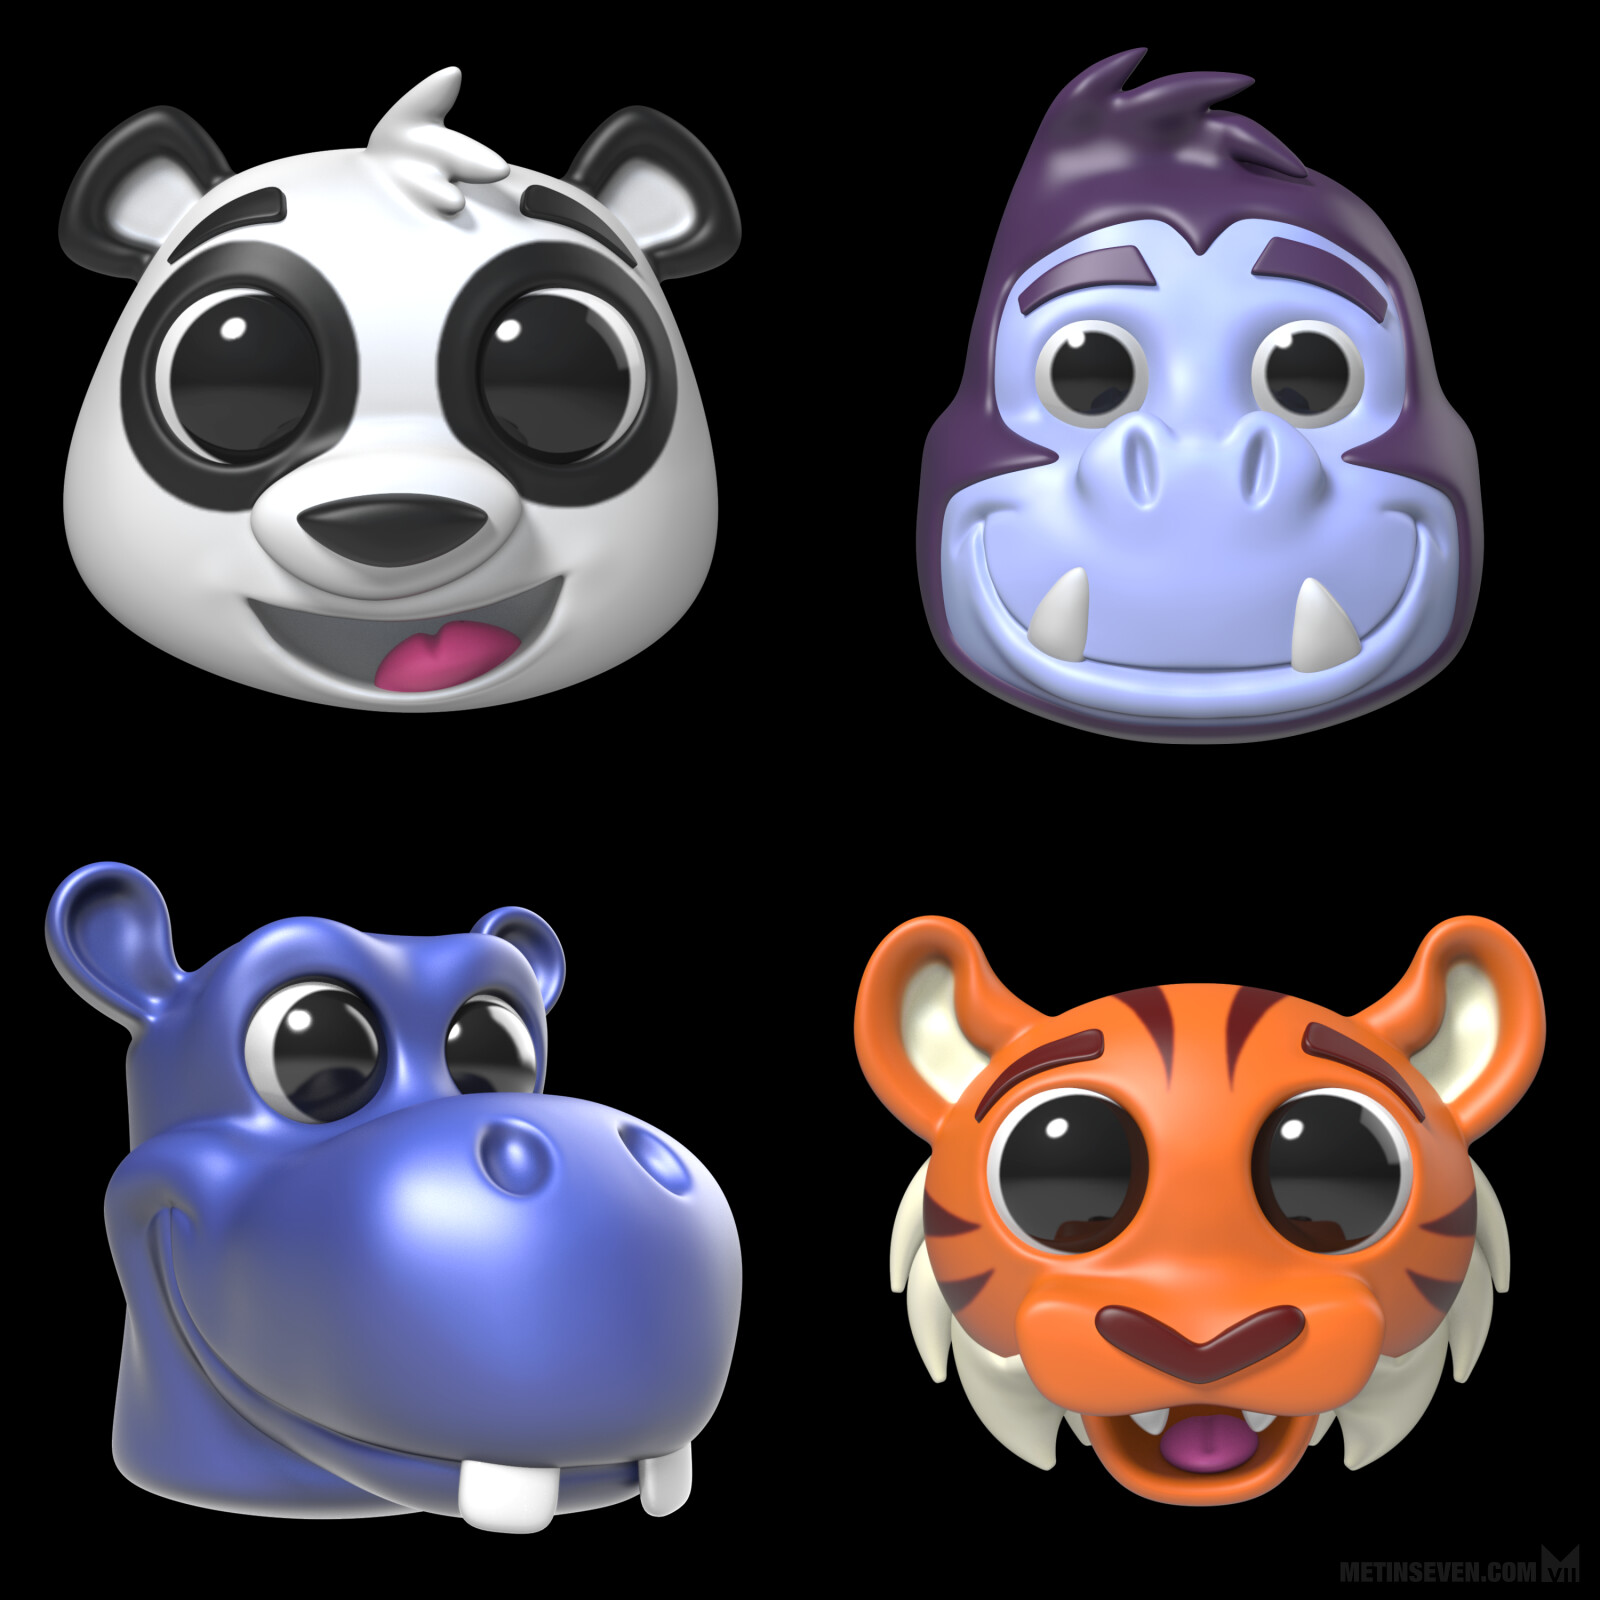 3D toy animal heads for a promotional kids collectibles campaign